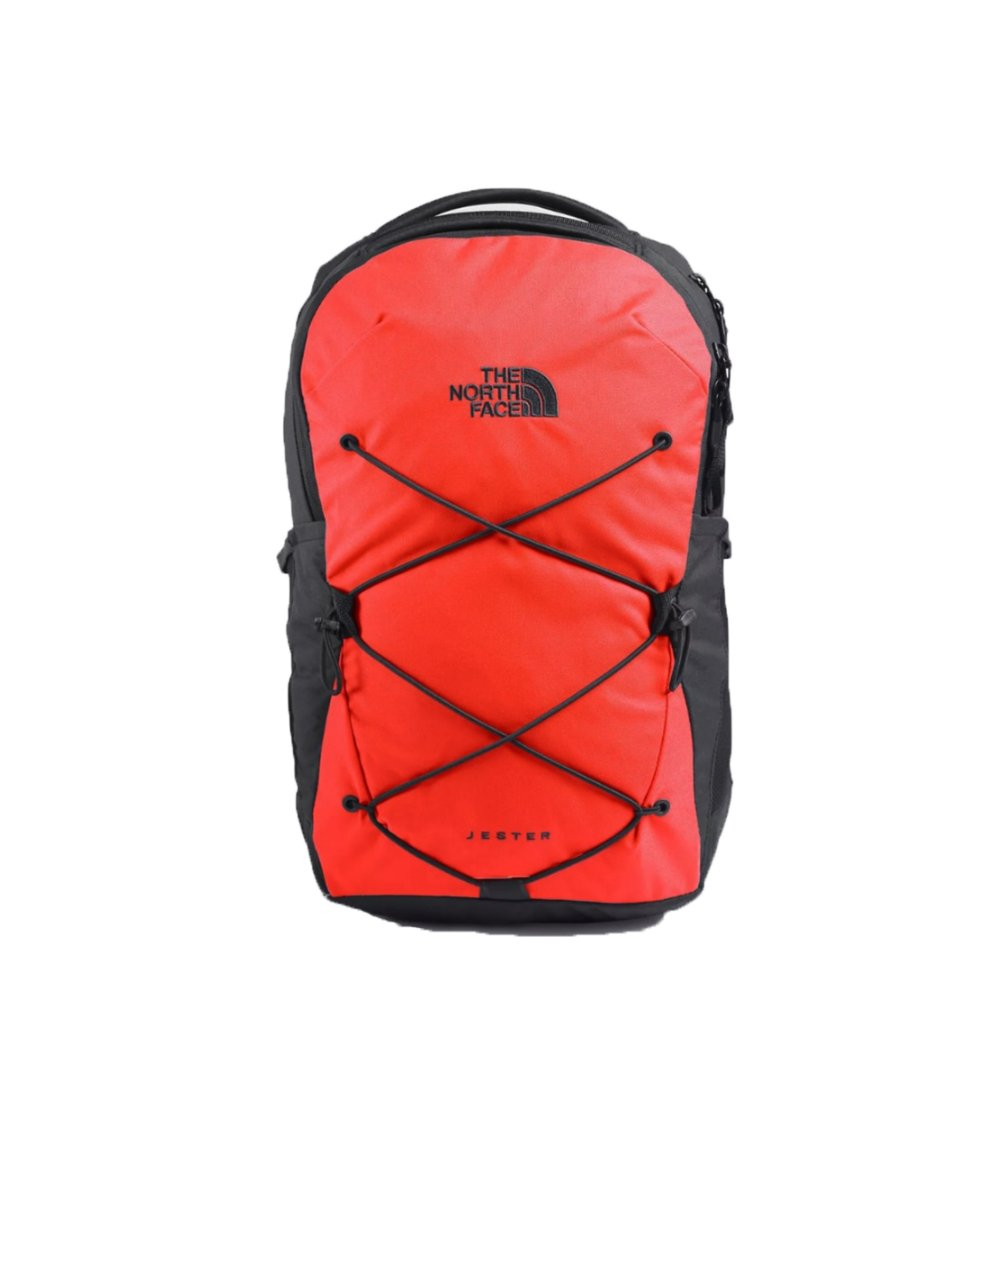 The North Face Jester 28L (NF0A3VXFKZ31) Red/Black